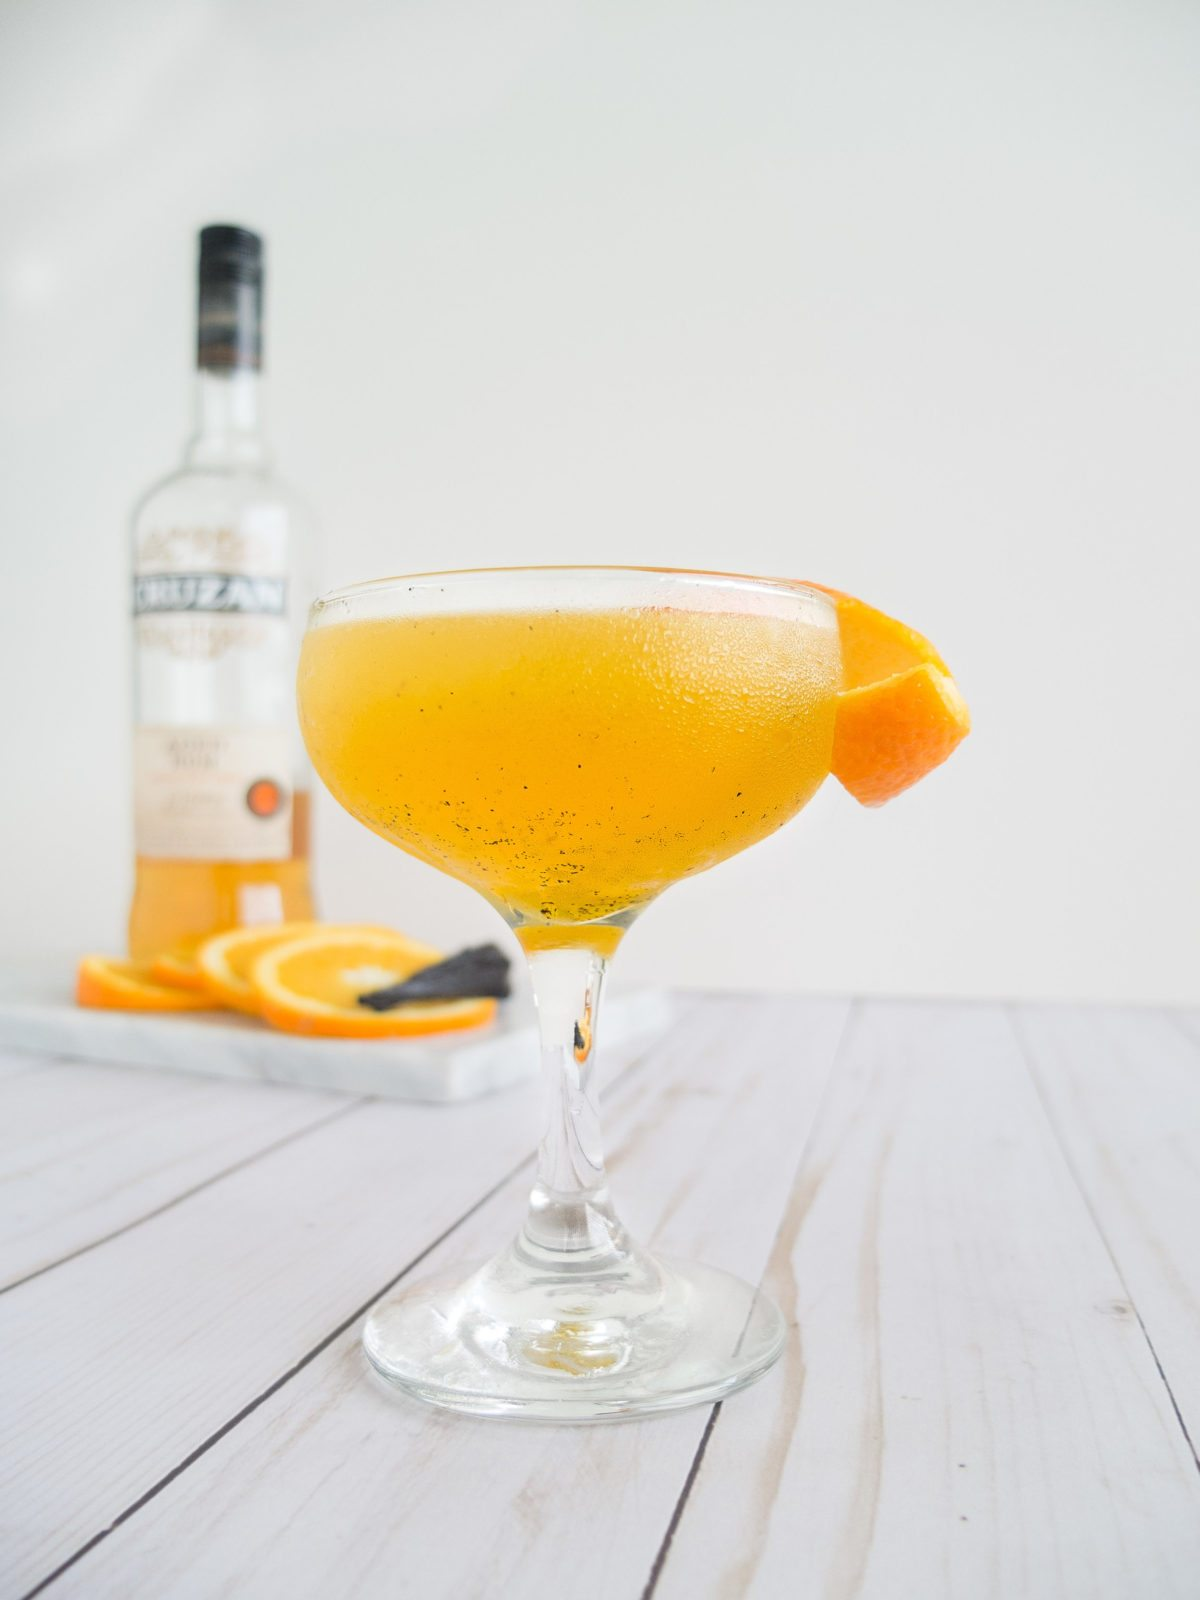 An adult take on a Dreamsicle Daiquiri drink recipe. This Vanilla Orange Daiquiri Cocktail is an easy rum cocktail that is sweet, bright, and warm. Using real vanilla beans, fresh orange juice, and dark rum to make a grown up version of an Orange and Vanilla Cocktail. Creamsicle Cocktail. Orange Creamsicle Cocktail. Easy Daiquiri. National Rum Day Cocktail. Dark Rum Cocktail. Easy Dark Rum Cocktail. Aged Rum Cocktail. Easy Aged Rum Cocktail. Best Rum Cocktail. // www.elletalk.com